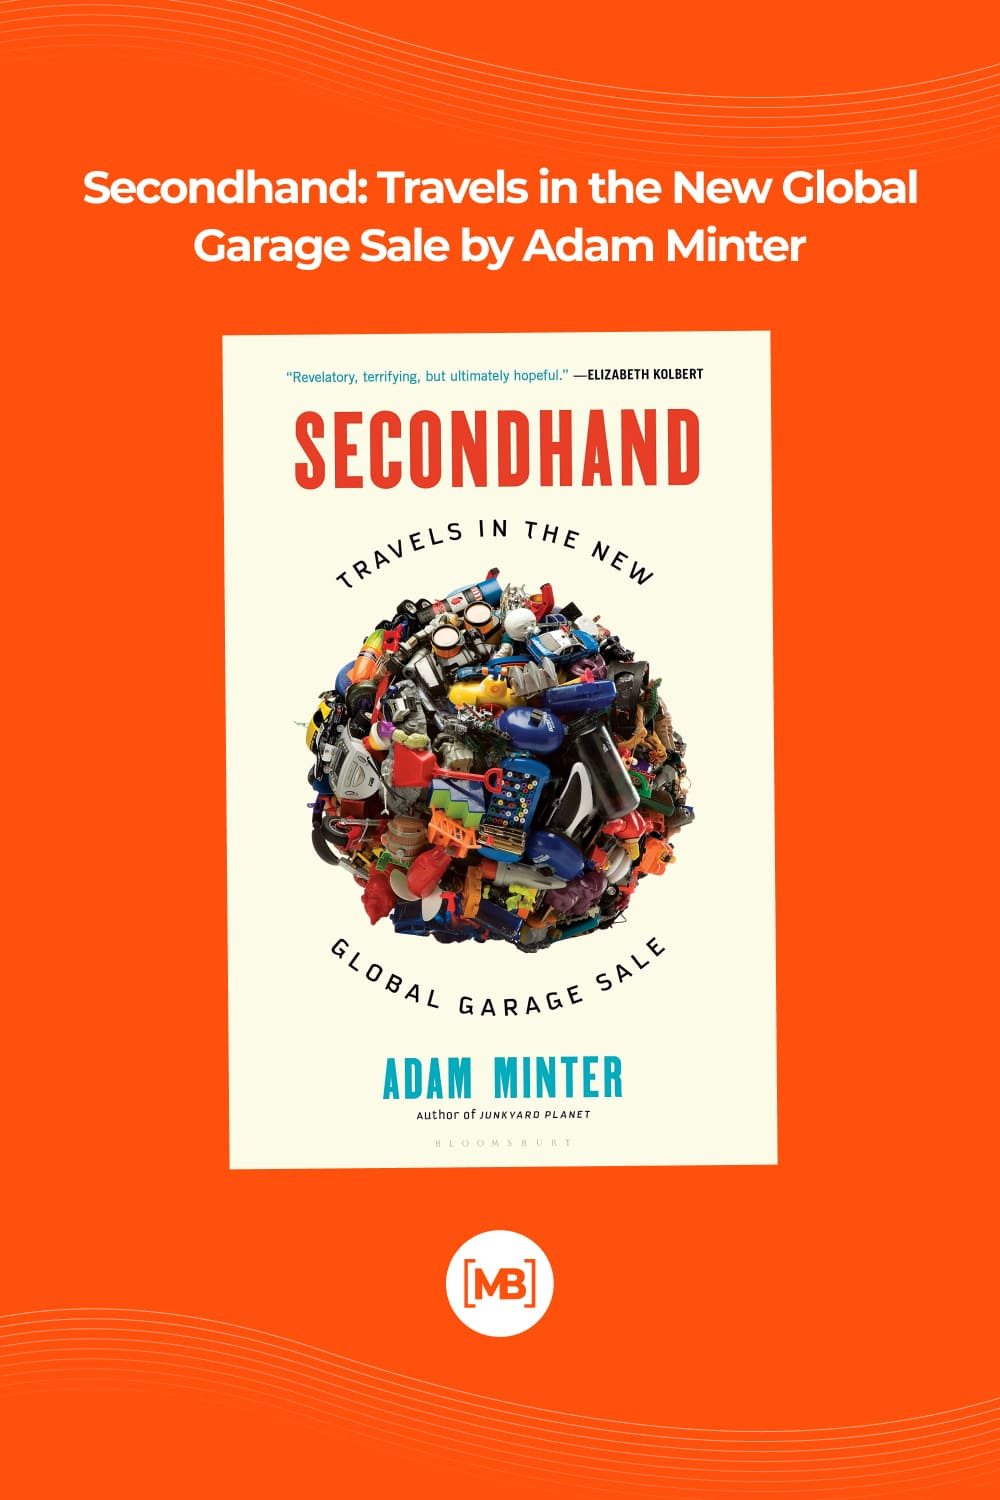 Secondhand: travels in the new global garage sale.